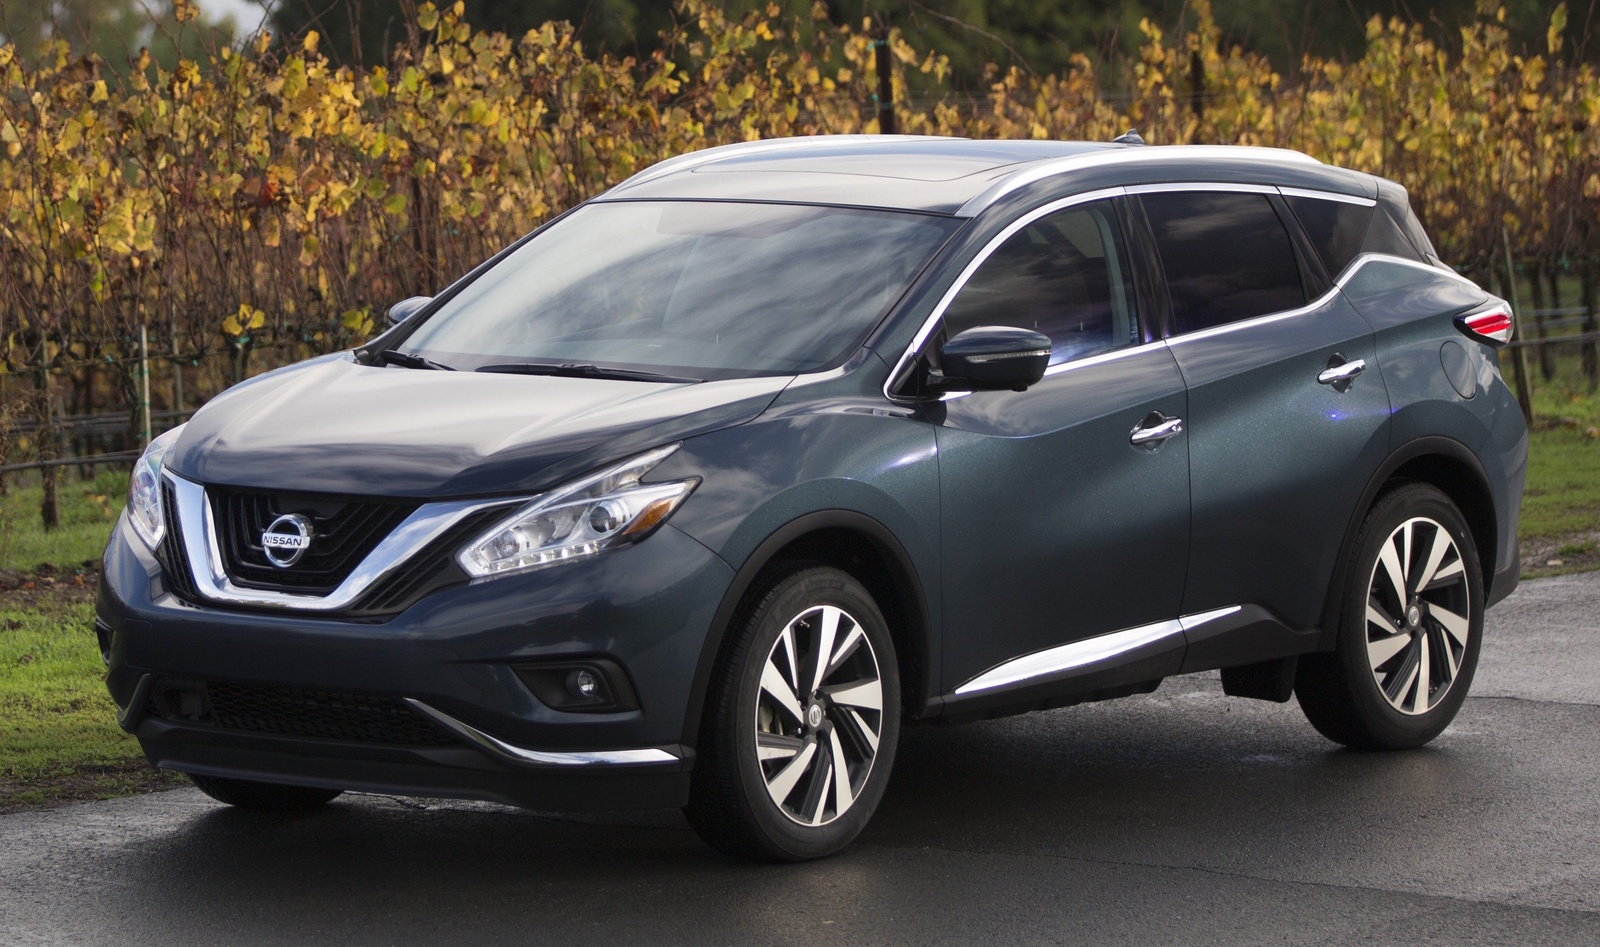 new 2015 2016 nissan murano for sale cargurus. Black Bedroom Furniture Sets. Home Design Ideas